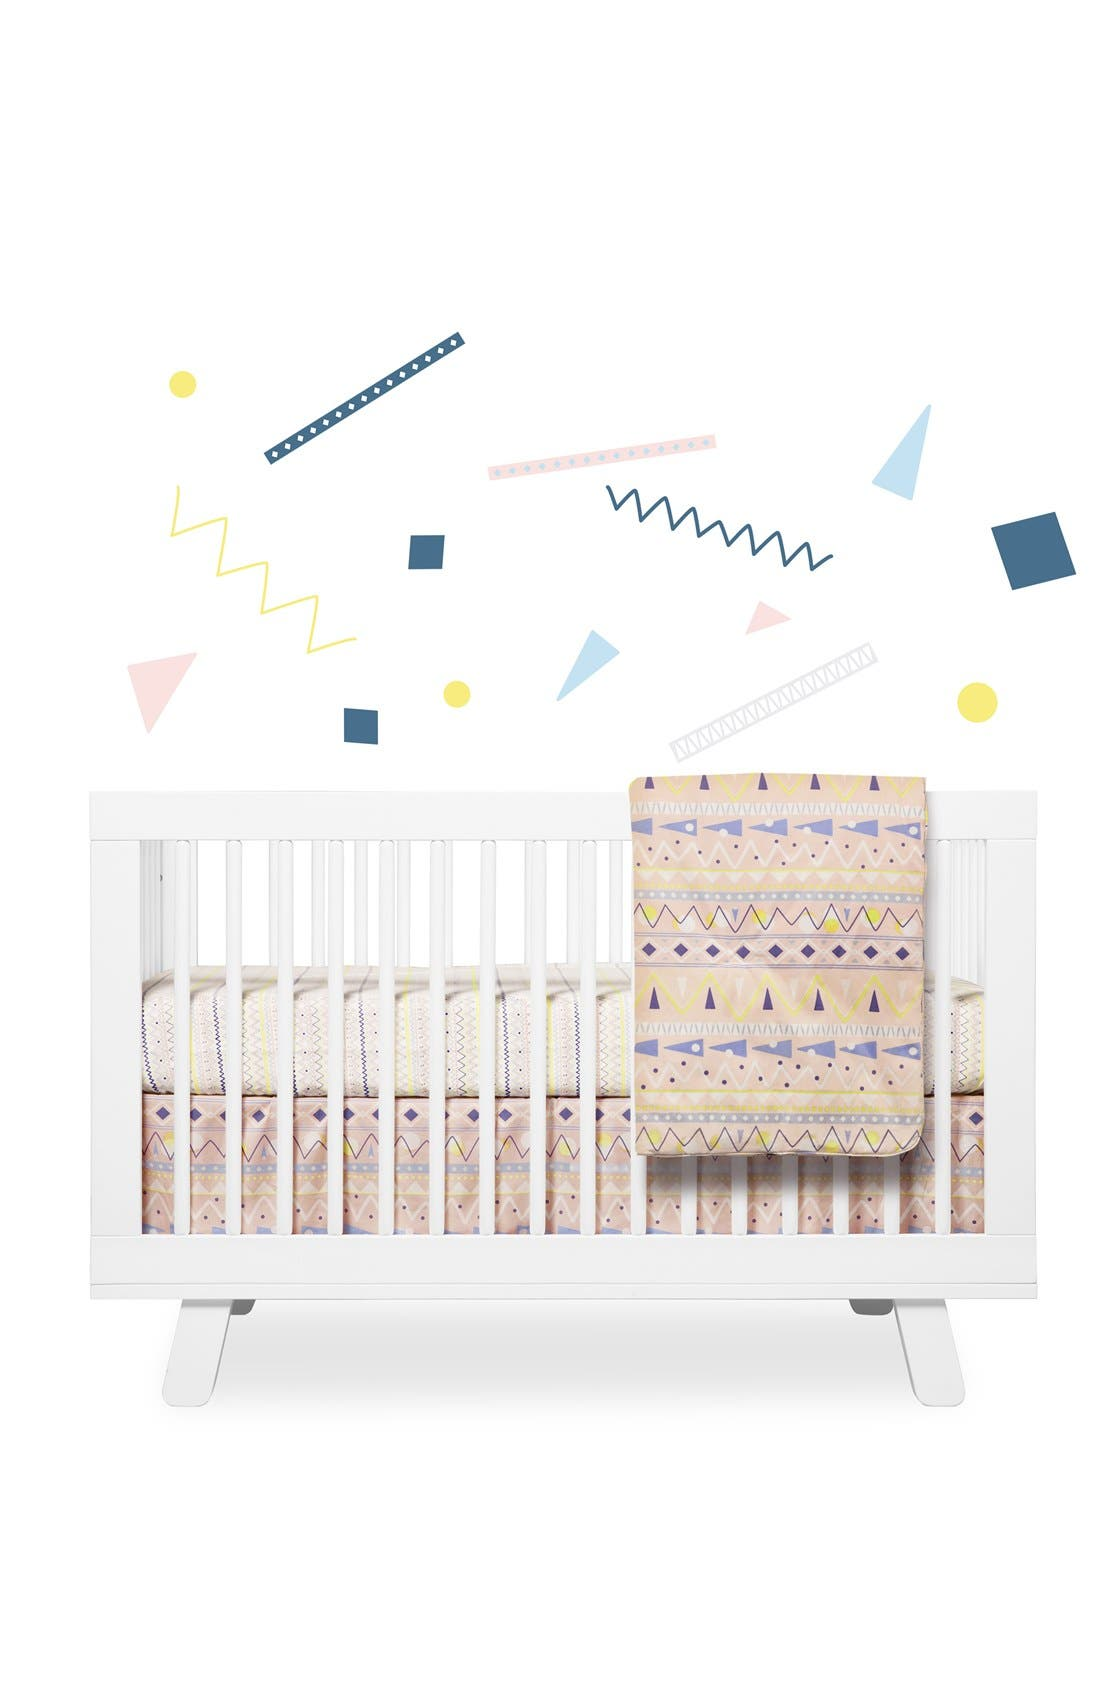 'Desert' Crib Sheet, Crib Skirt, Changing Pad Cover, Blanket & Wall Decals,                             Main thumbnail 1, color,                             Off White